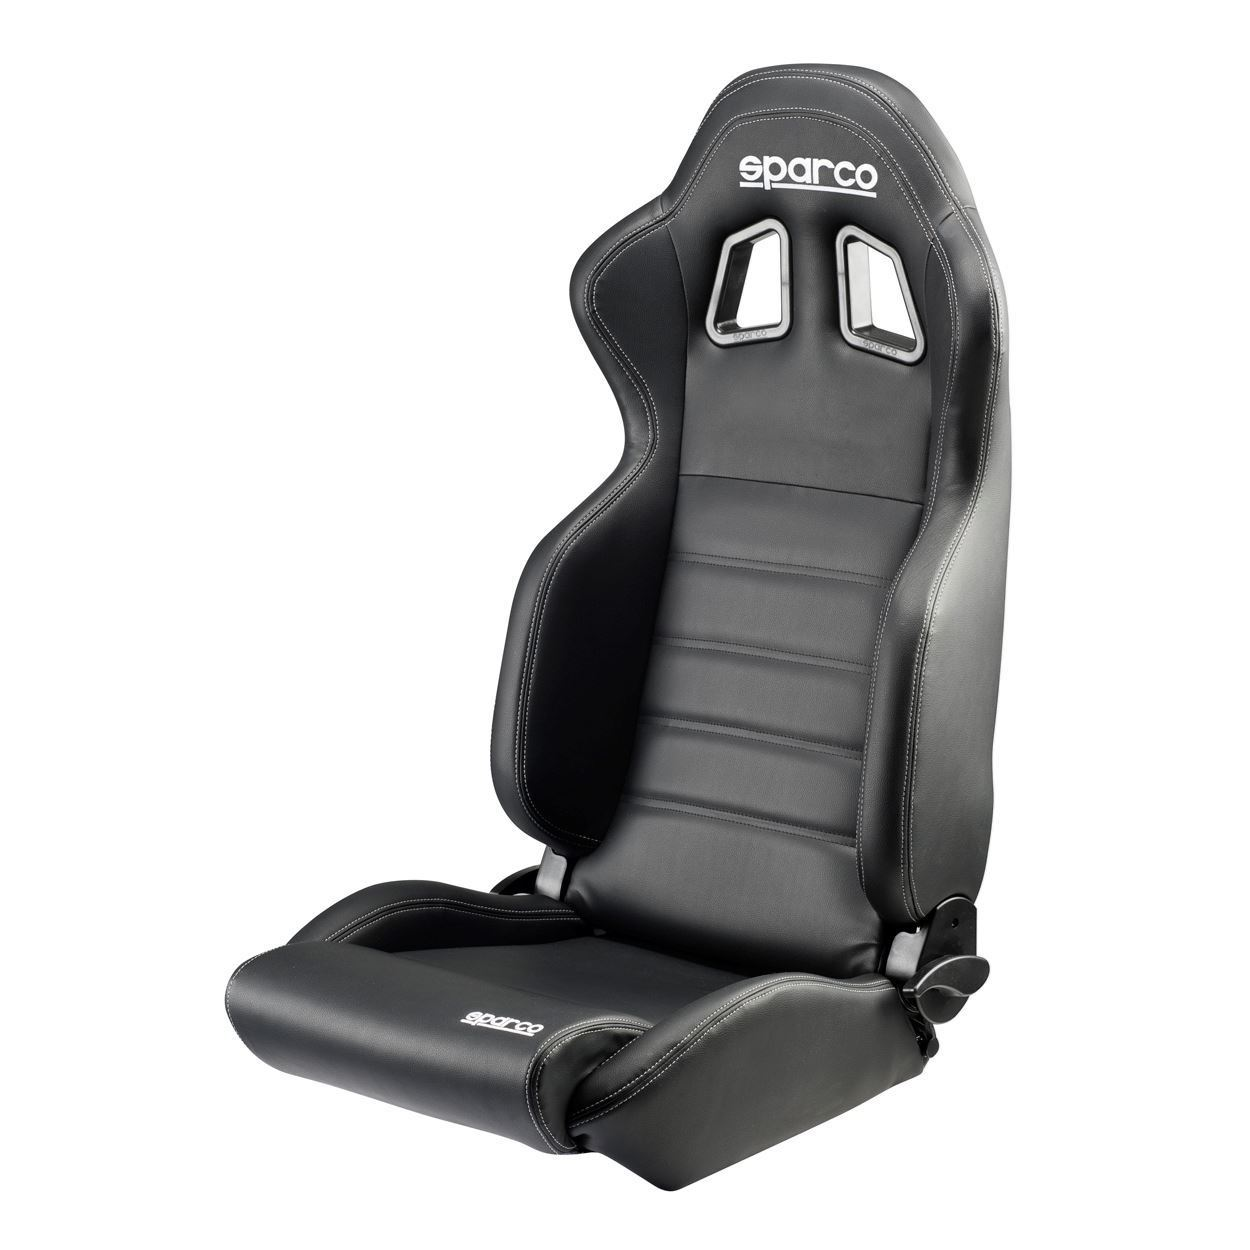 Sparco R100 Racing Seat 00961